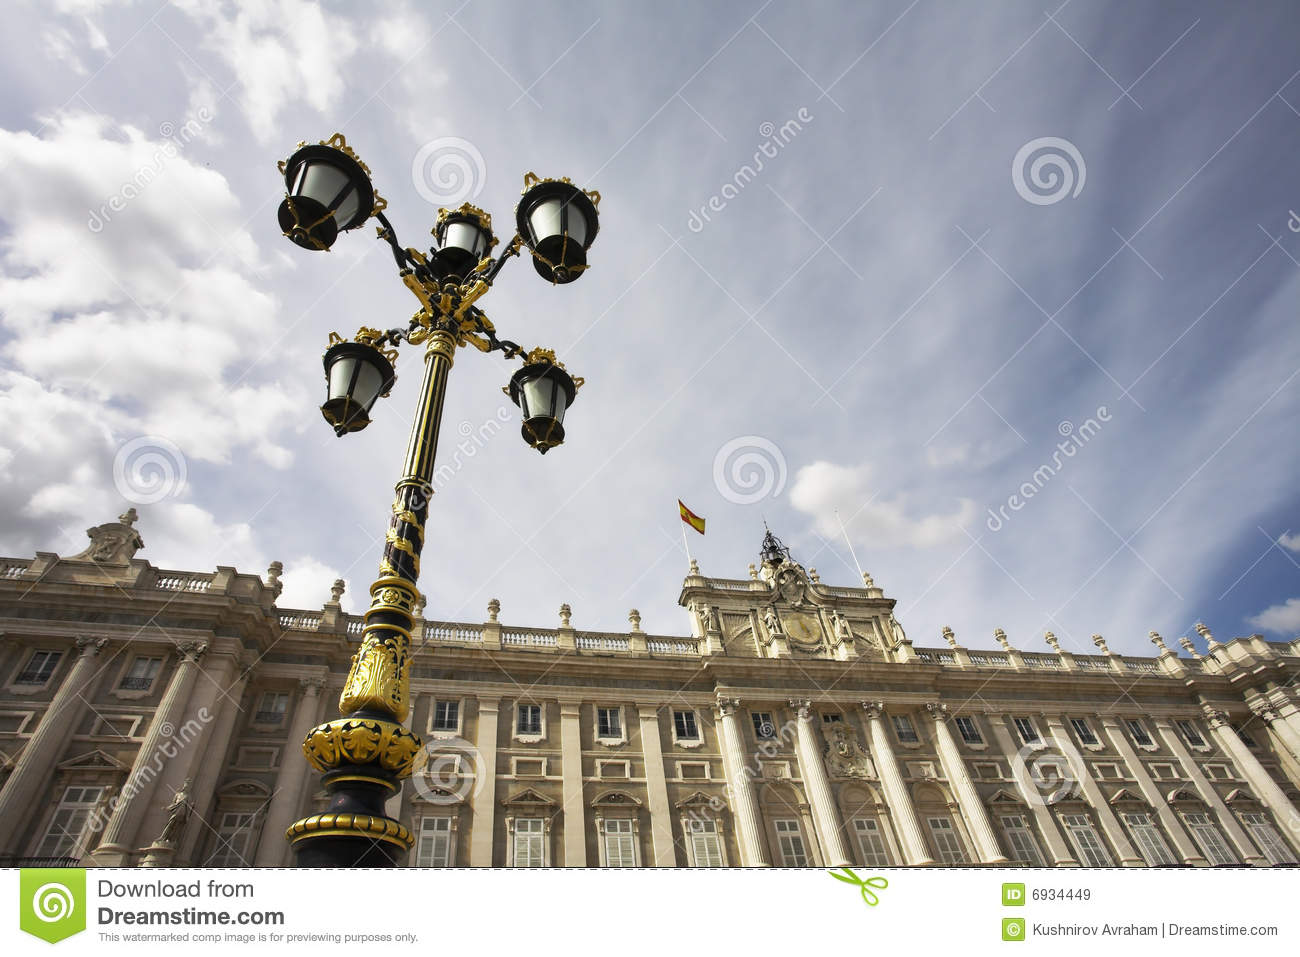 Charming lantern in style of a baroque